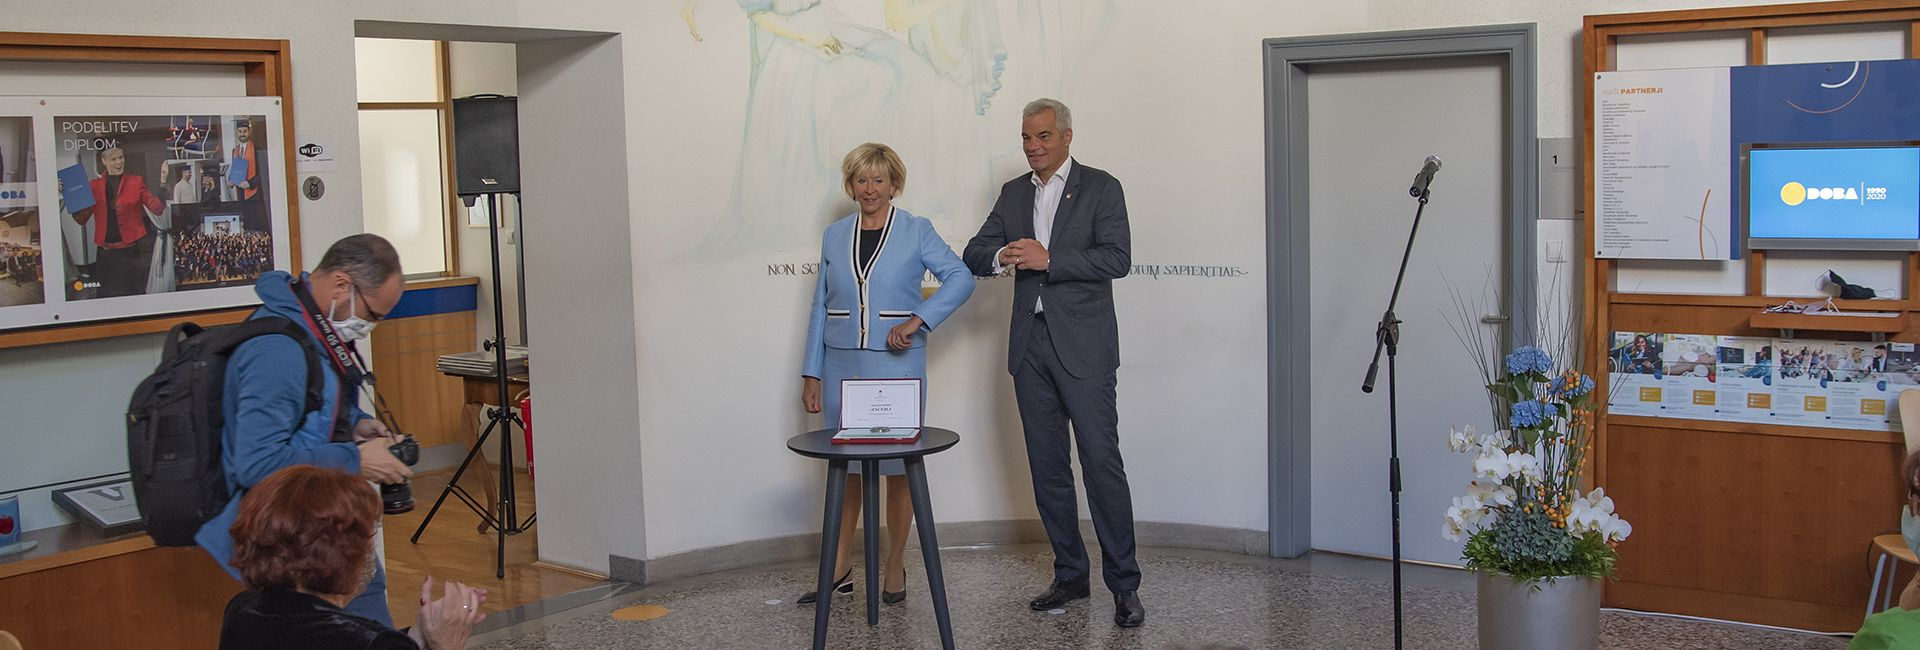 On the Occasion of the 30th Anniversary of DOBA, the Mayor of Maribor Awarded DOBA with the City Seal of Maribor